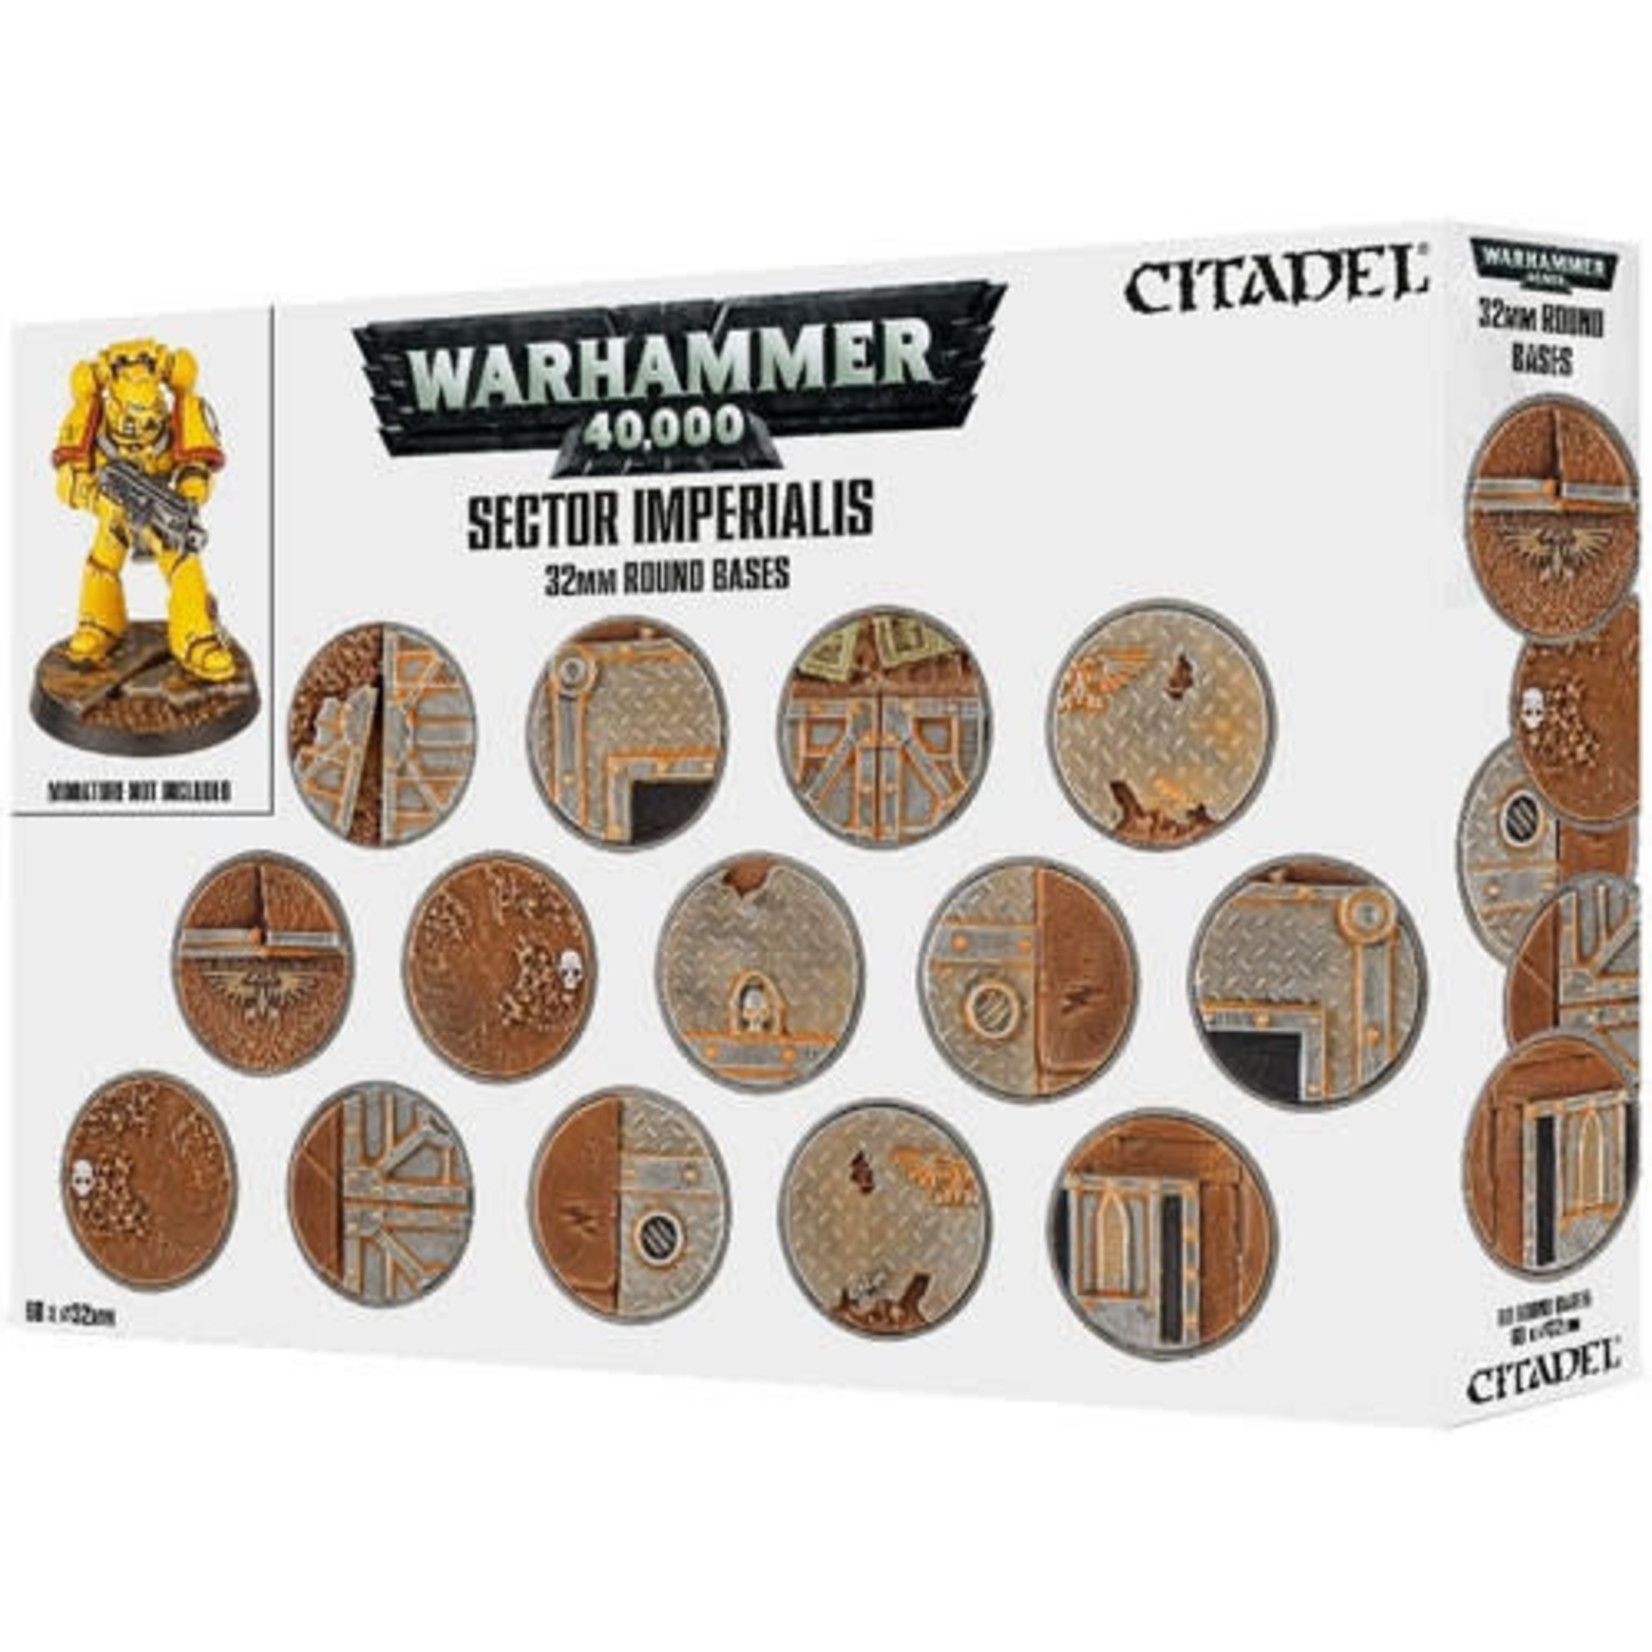 Citadel 32mm Round Bases (Sector Imperialis)